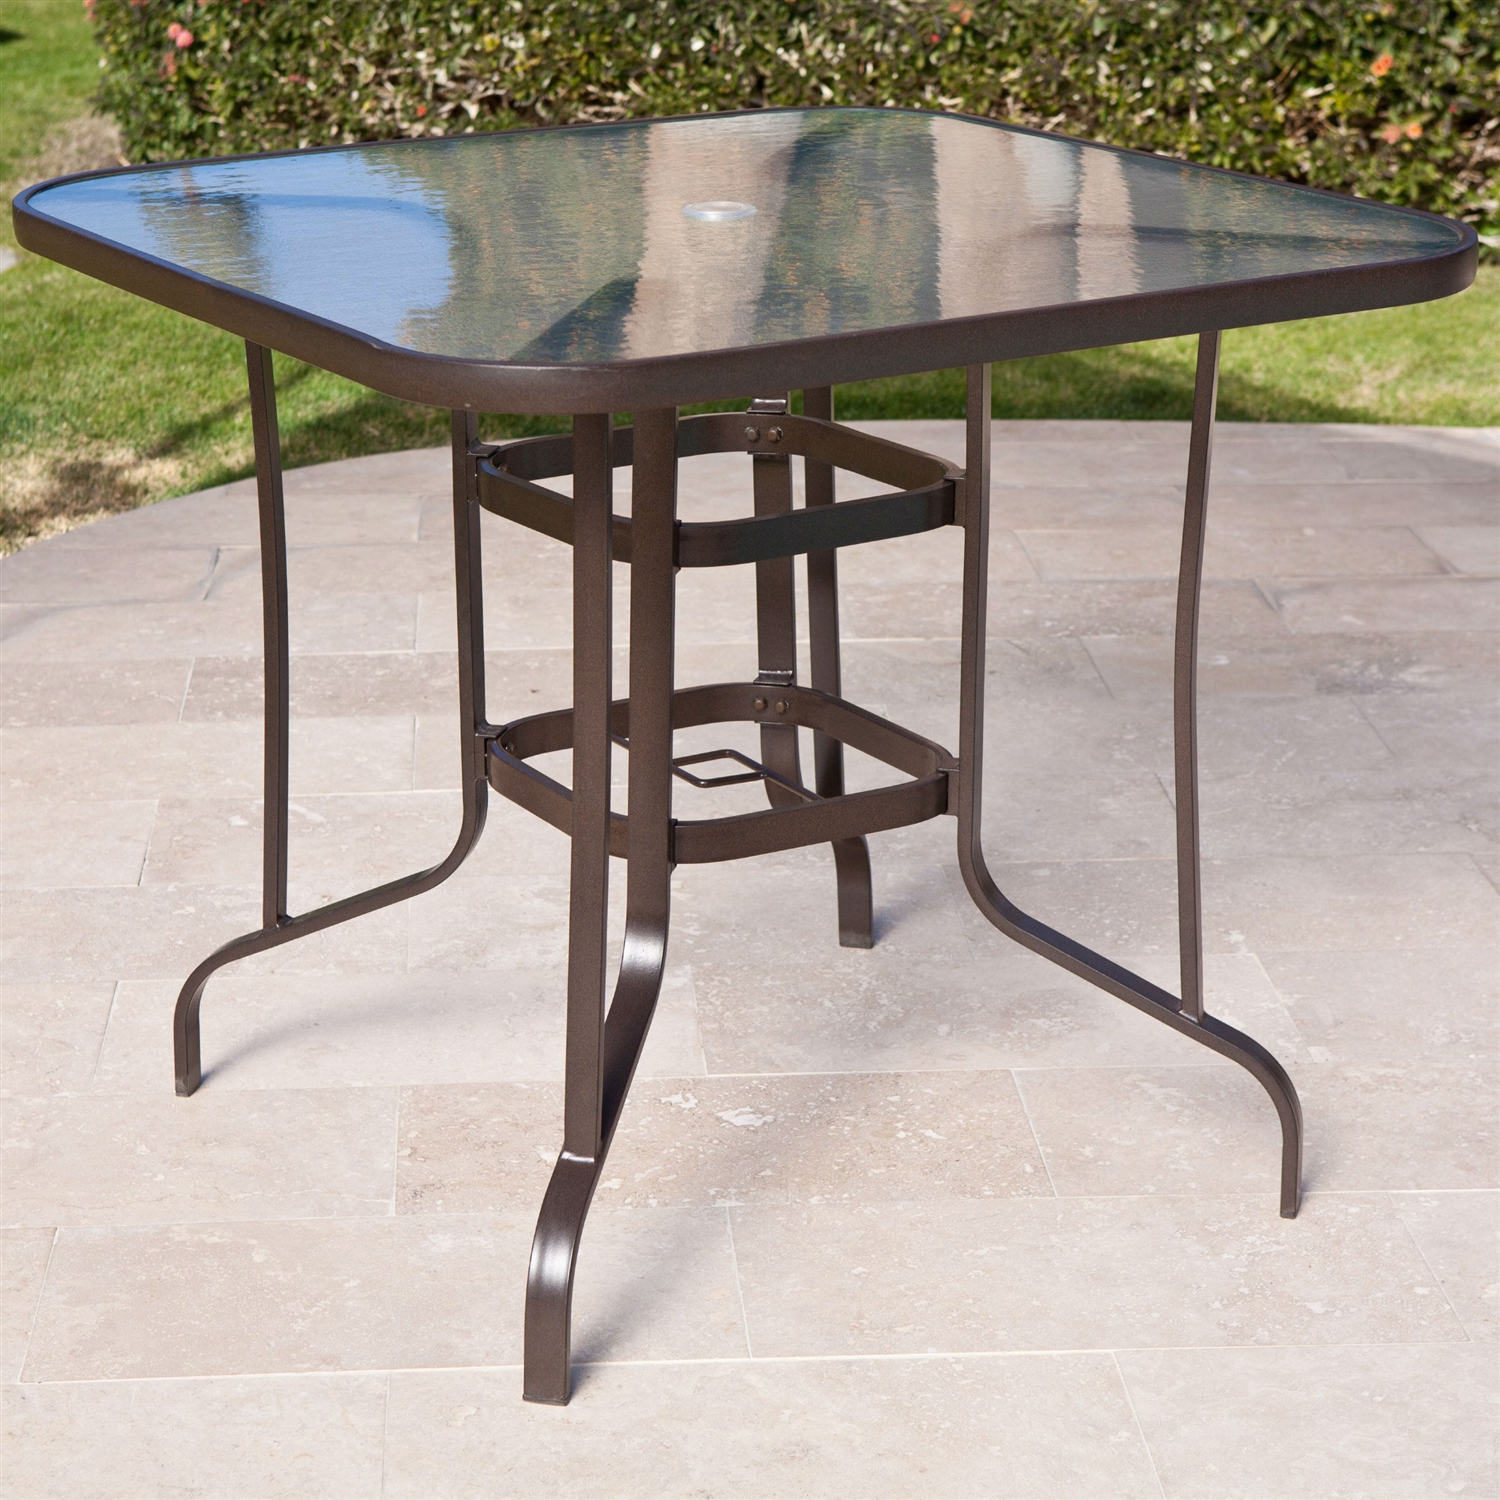 40 inch Outdoor Patio Dining Table with Glass Top and Umbrella